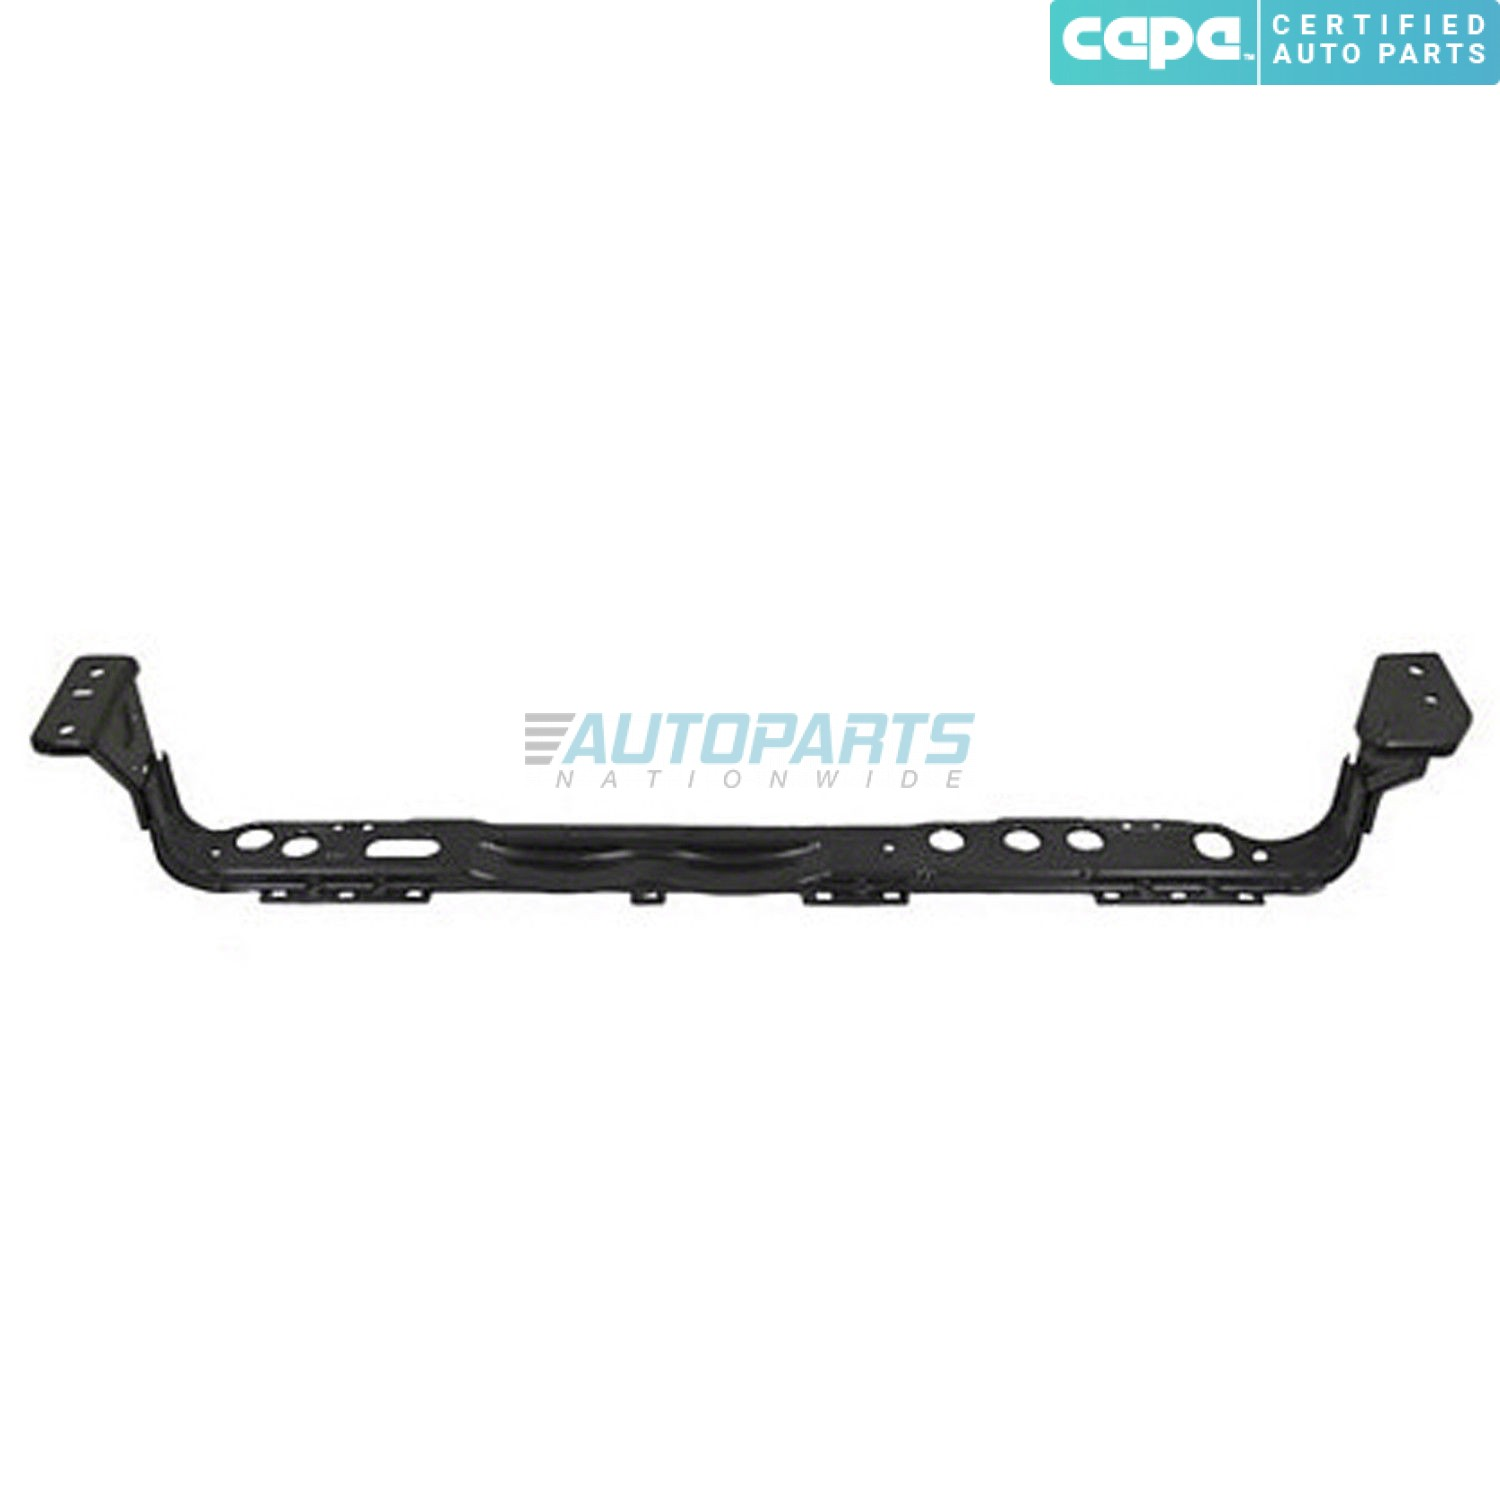 New Radiator Support Core Lower Sedan Ford Focus 2012-2016 FO1225220 CP9Z16138A